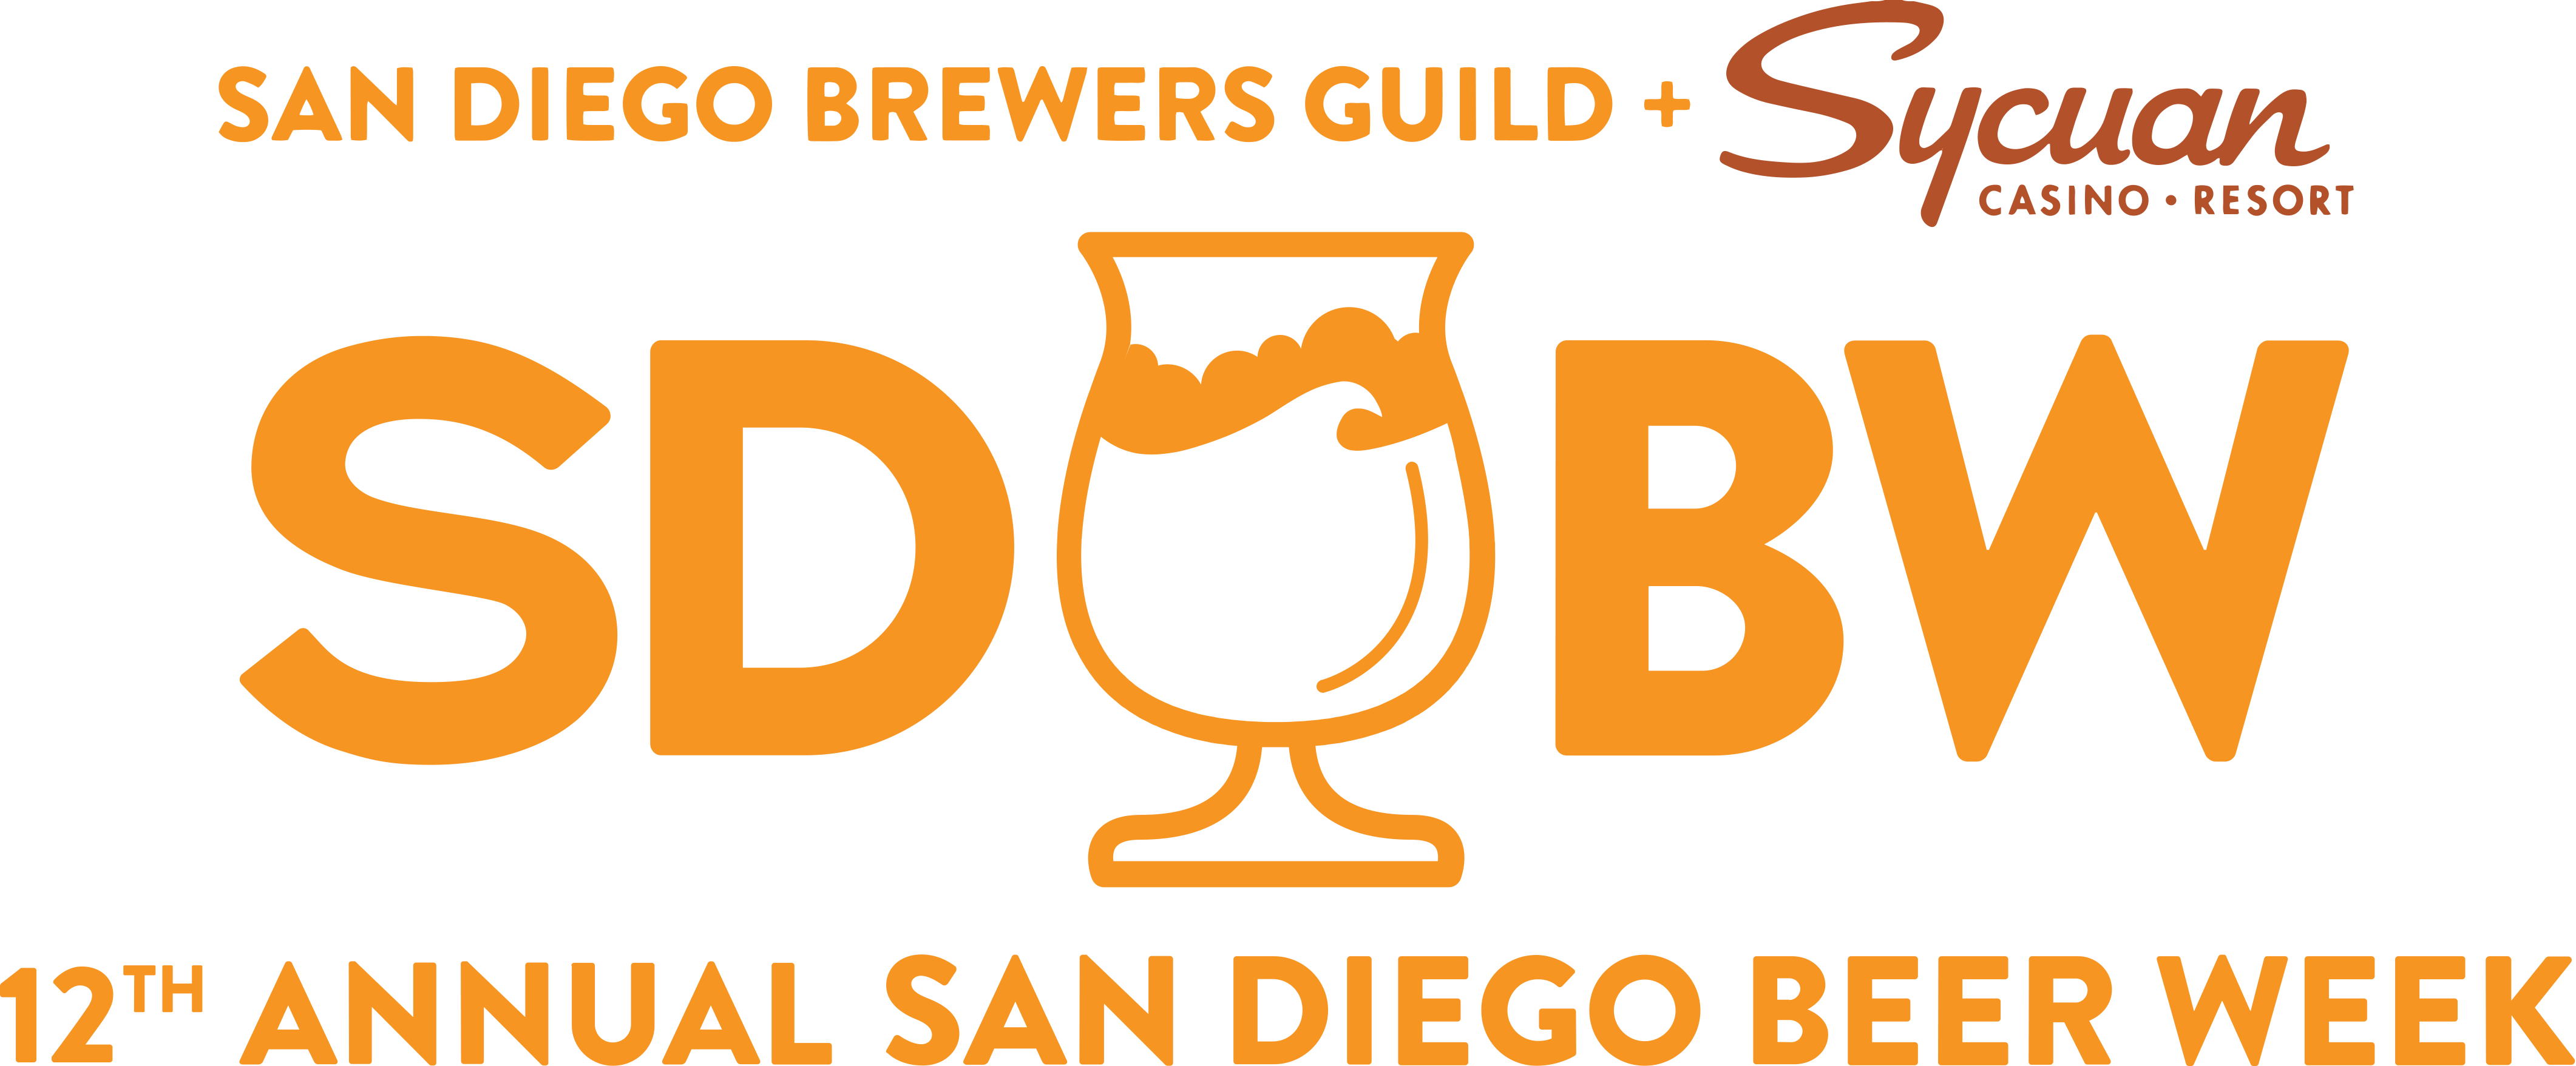 SD Beer Week